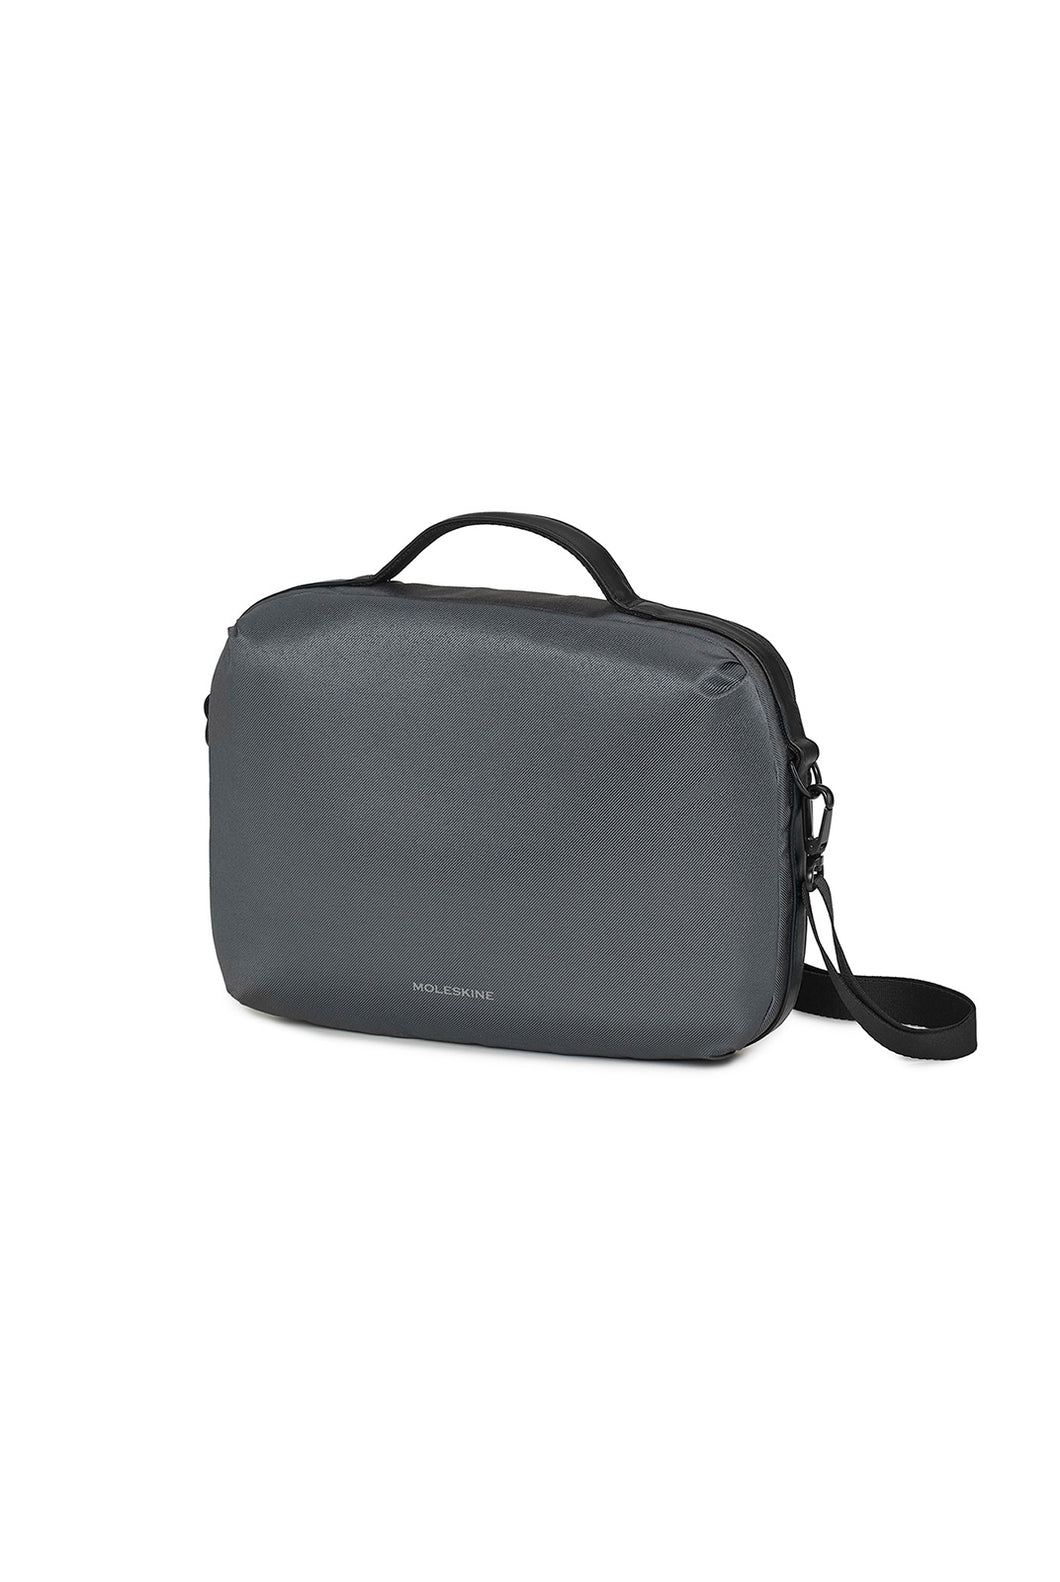 Moleskine - Notebook Backpack Collection Horizontal Device Bag - Grey